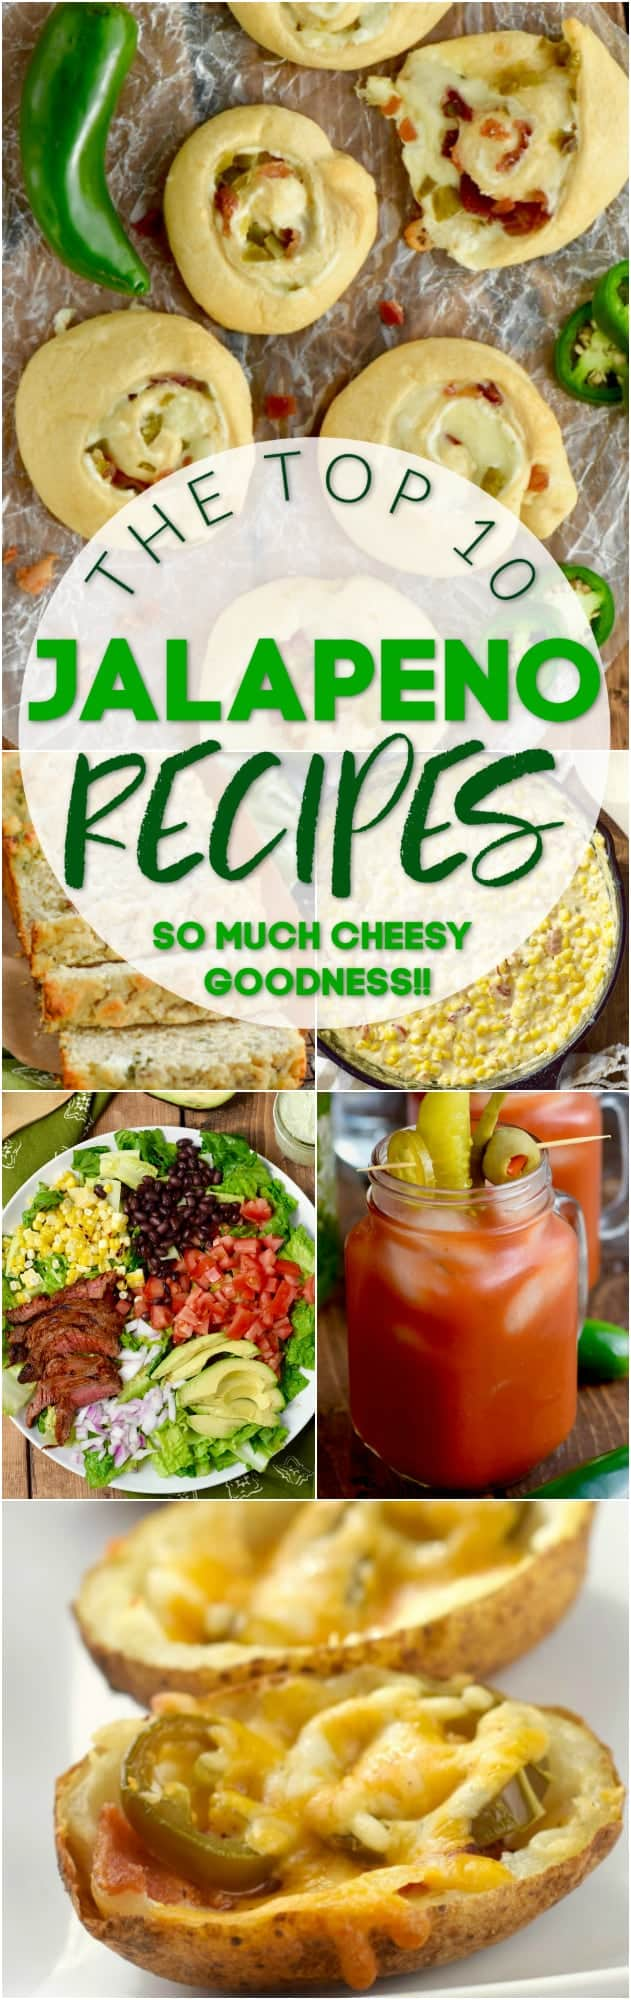 collage of photos of jalapeño recipes